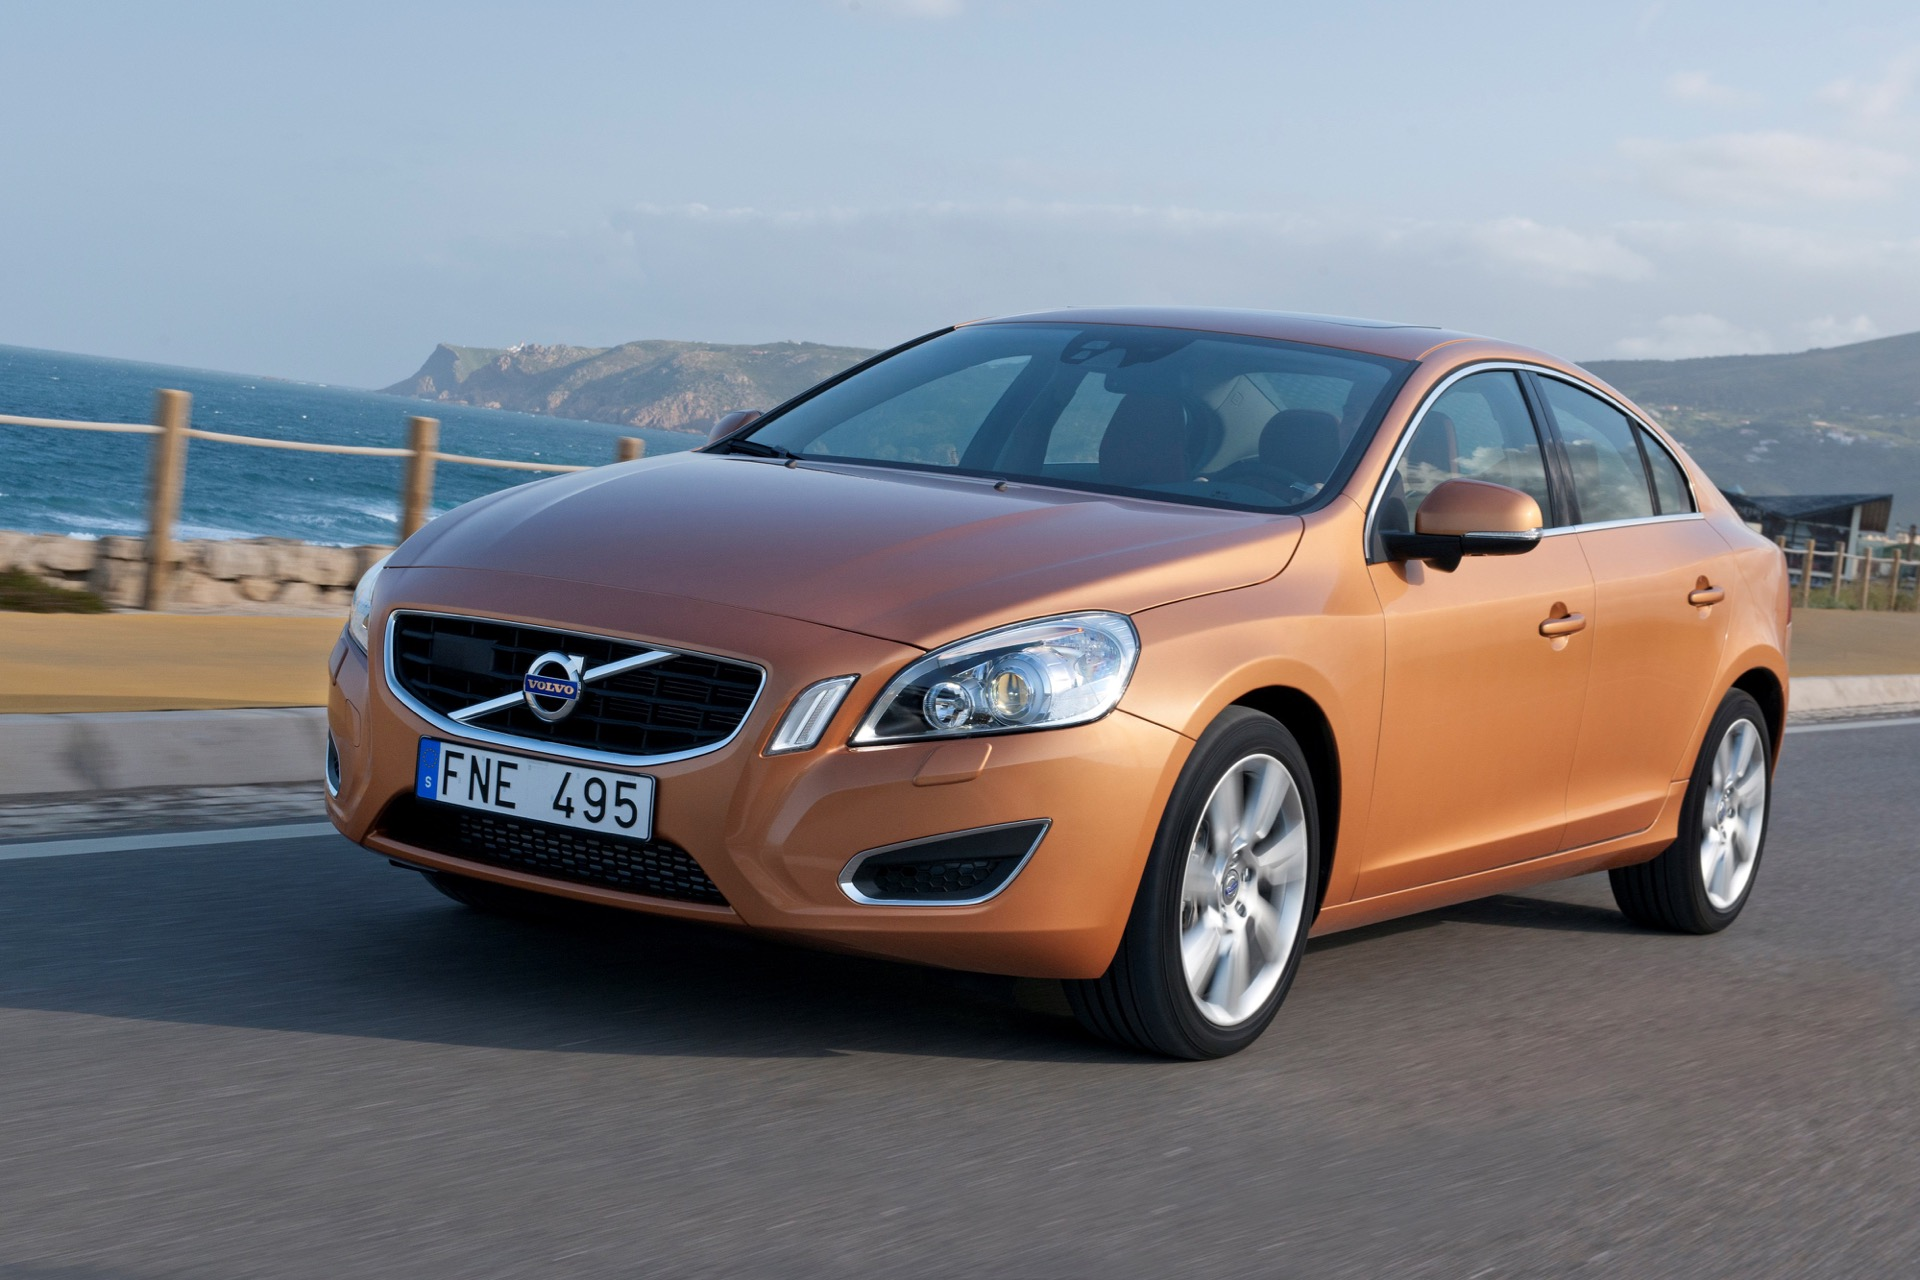 The All New Volvo S60 On The Road In The Region Of Sintra Portugal03 -  Volvo